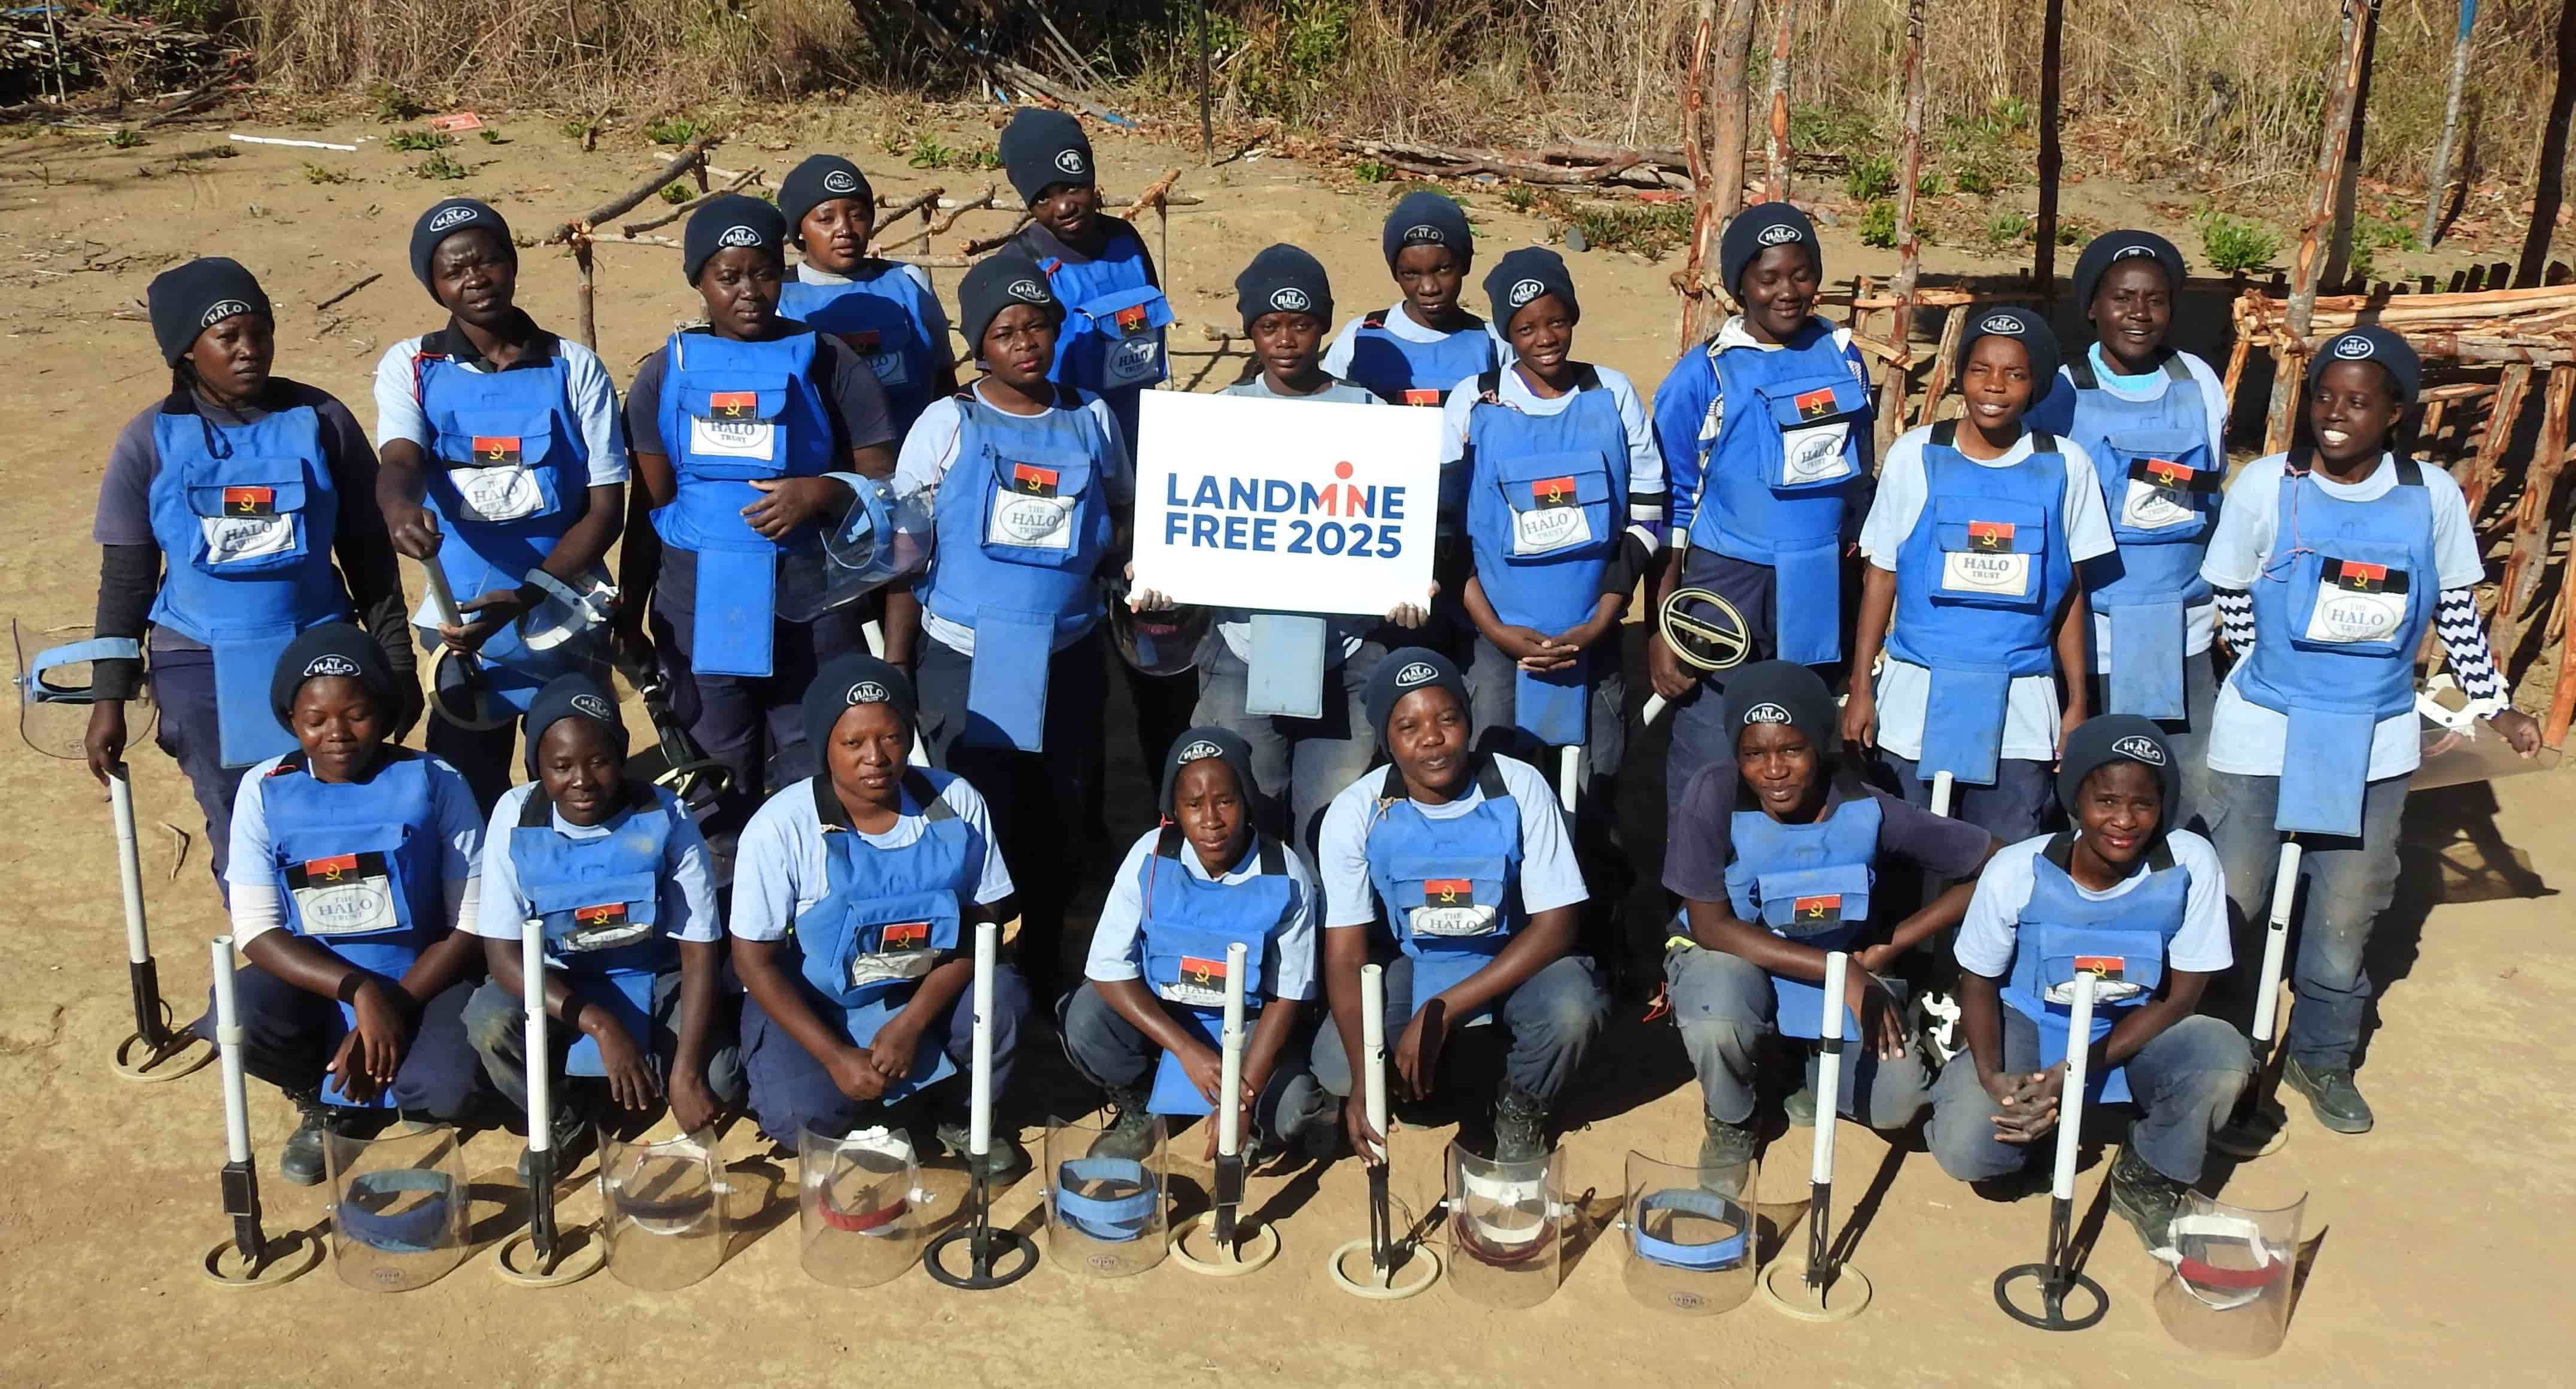 The demining team in Angola - the country should be mine-free by 2025